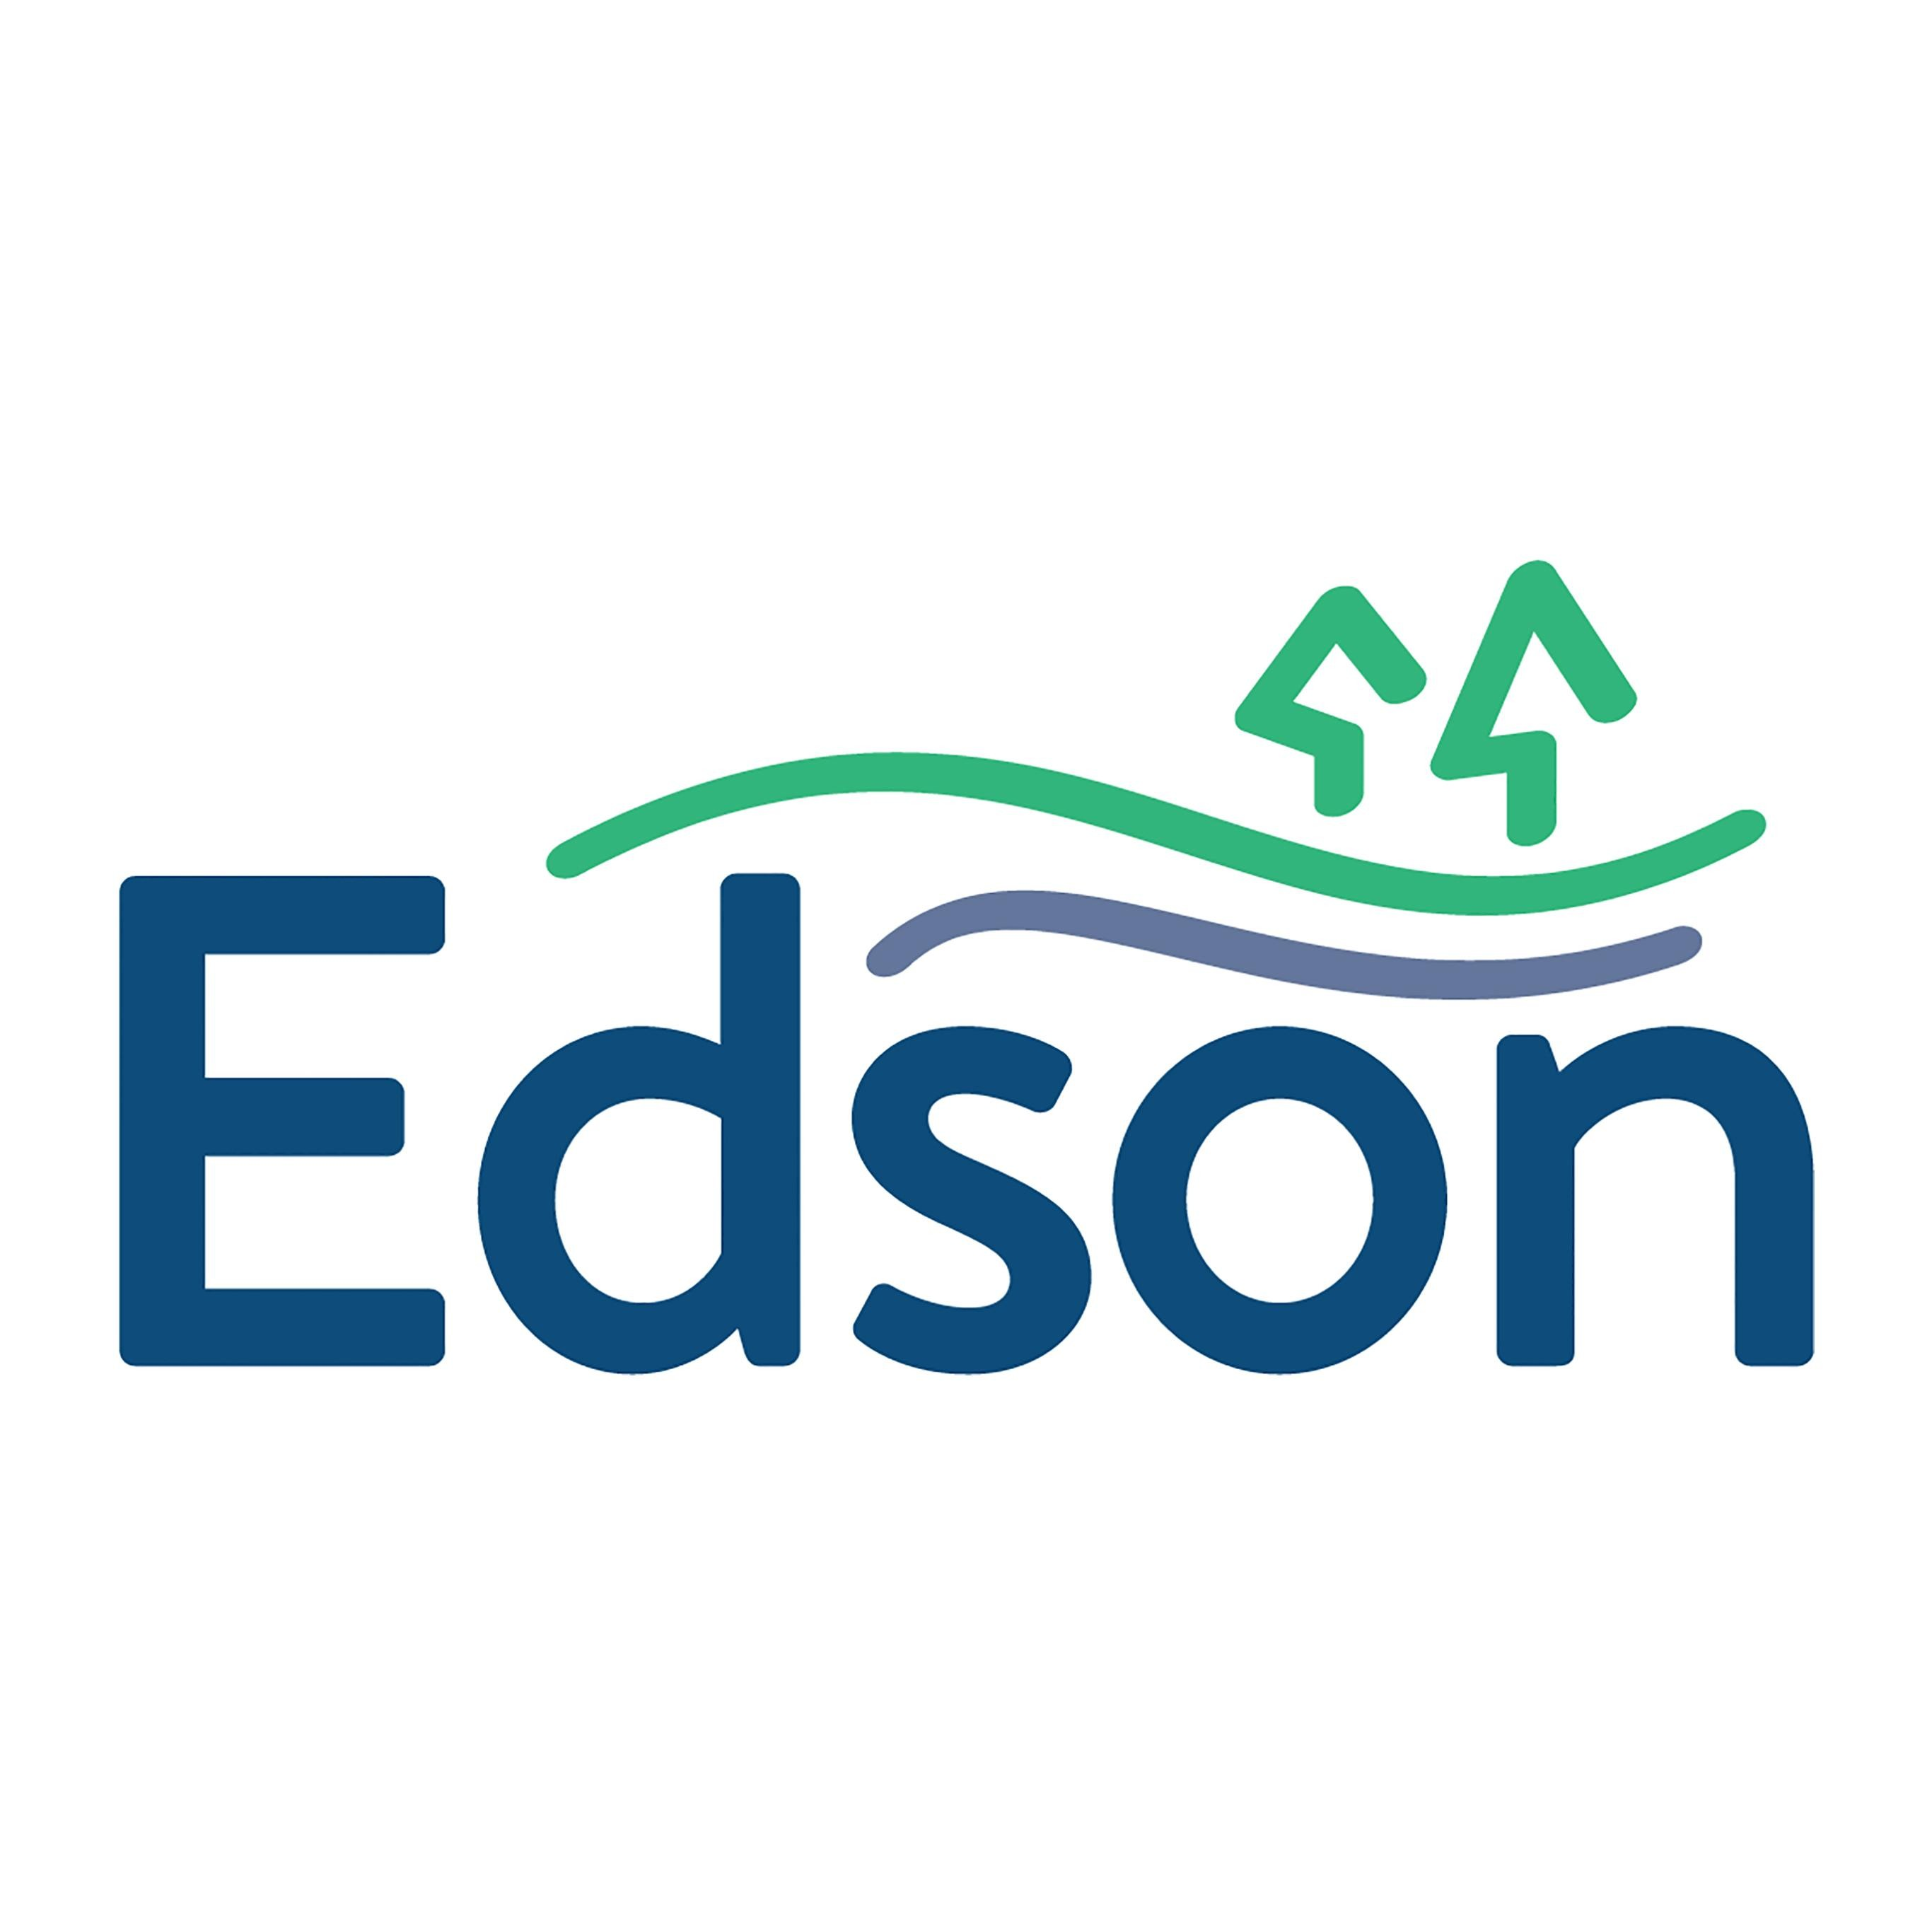 The Town of Edson